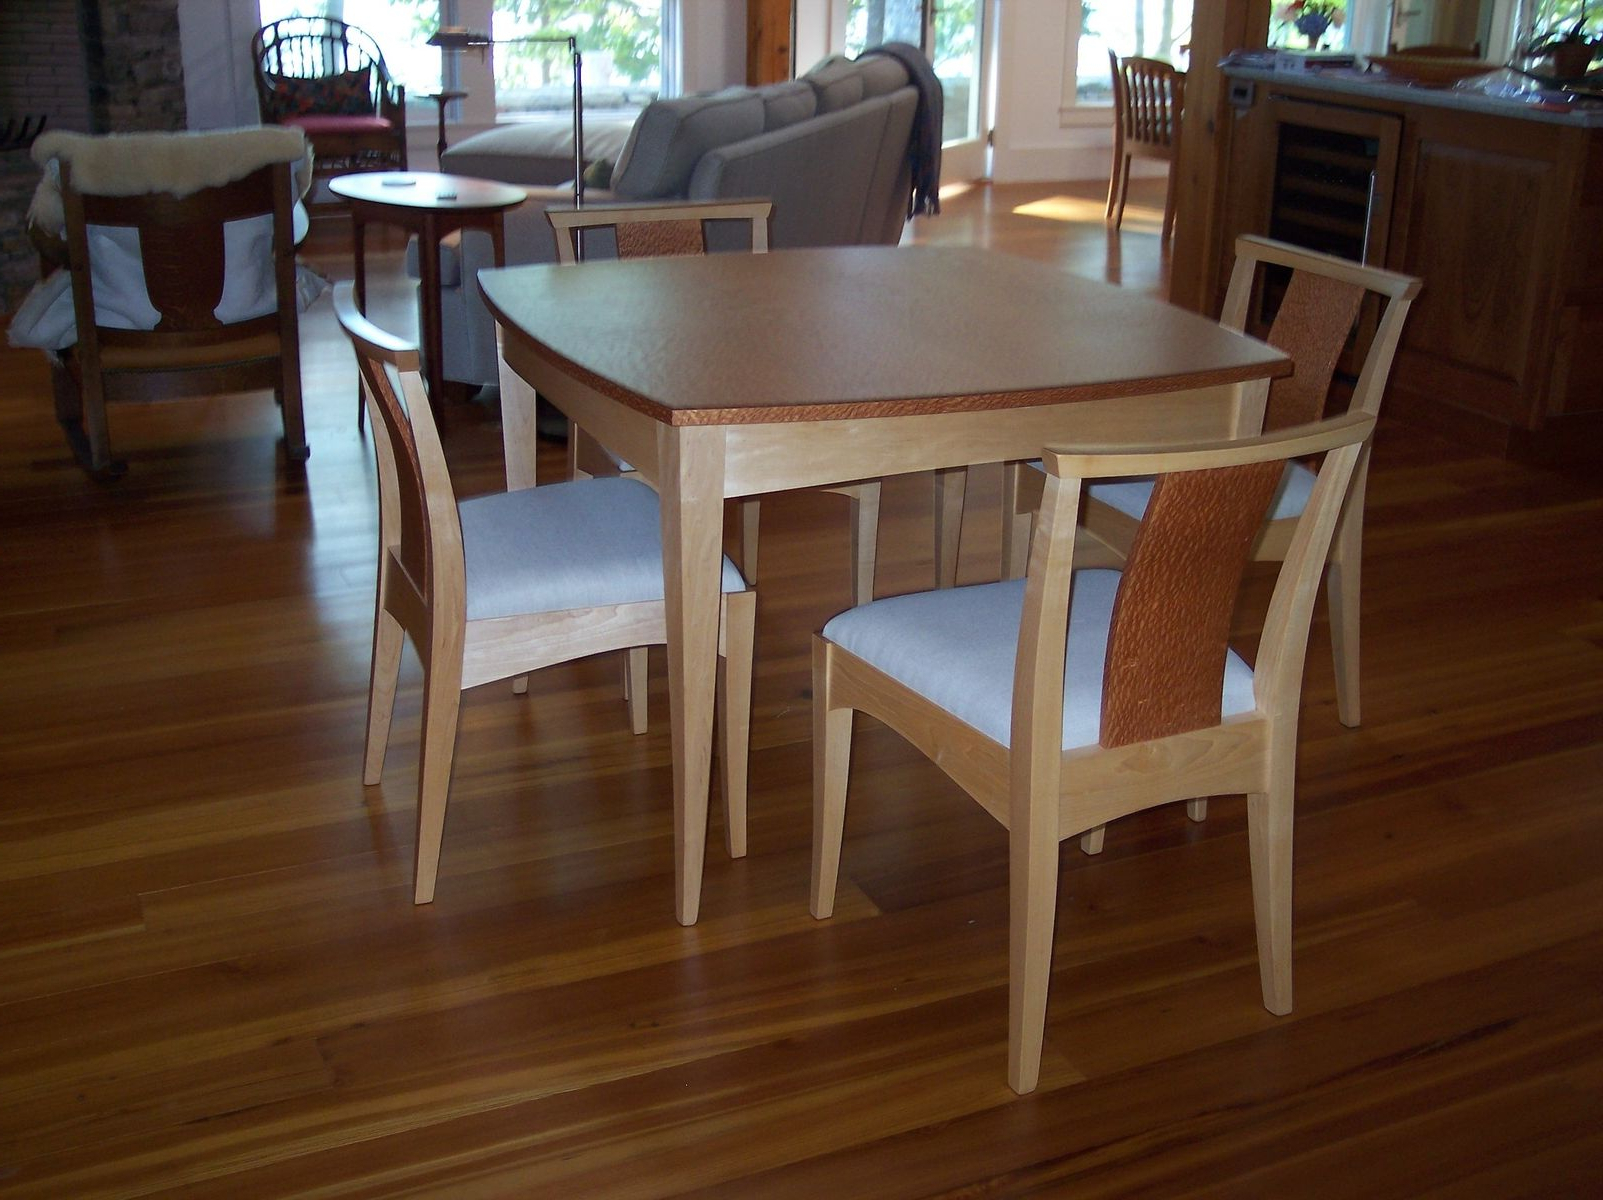 Widely Used Small Rustic Look Dining Tables With Regard To Hand Made Curvy, Square Small Dining Table And Chairs (View 22 of 25)